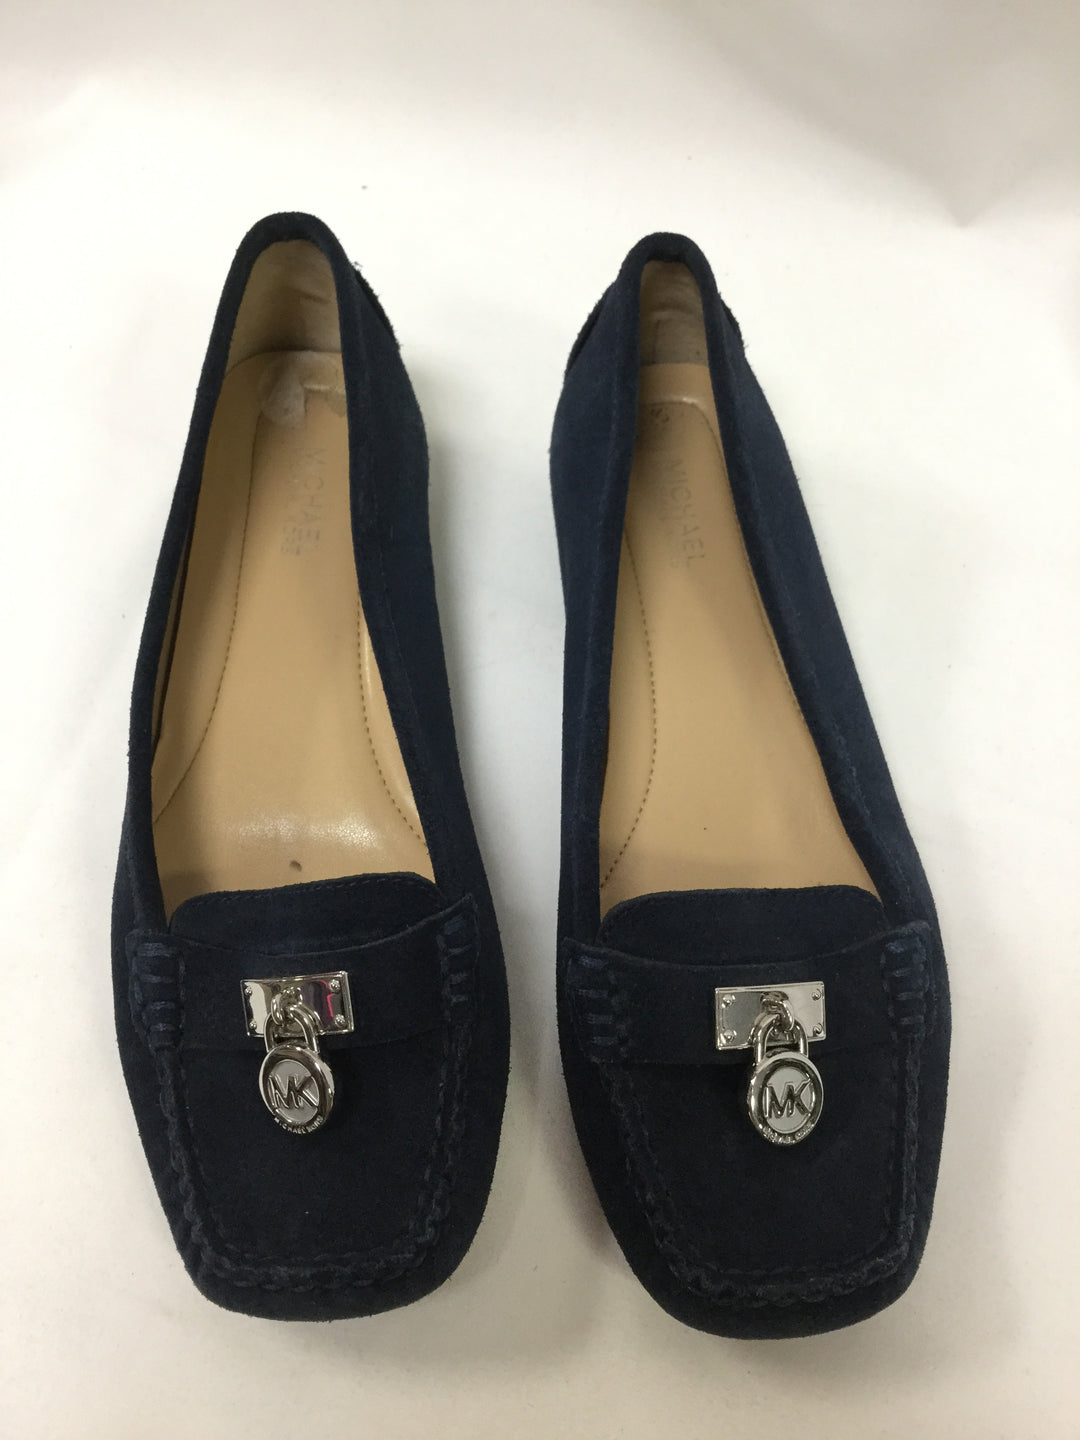 Primary Photo - BRAND: MICHAEL BY MICHAEL KORS <BR>STYLE: SHOES FLATS <BR>COLOR: BLUE <BR>SIZE: 6 <BR>SKU: 155-15599-235866